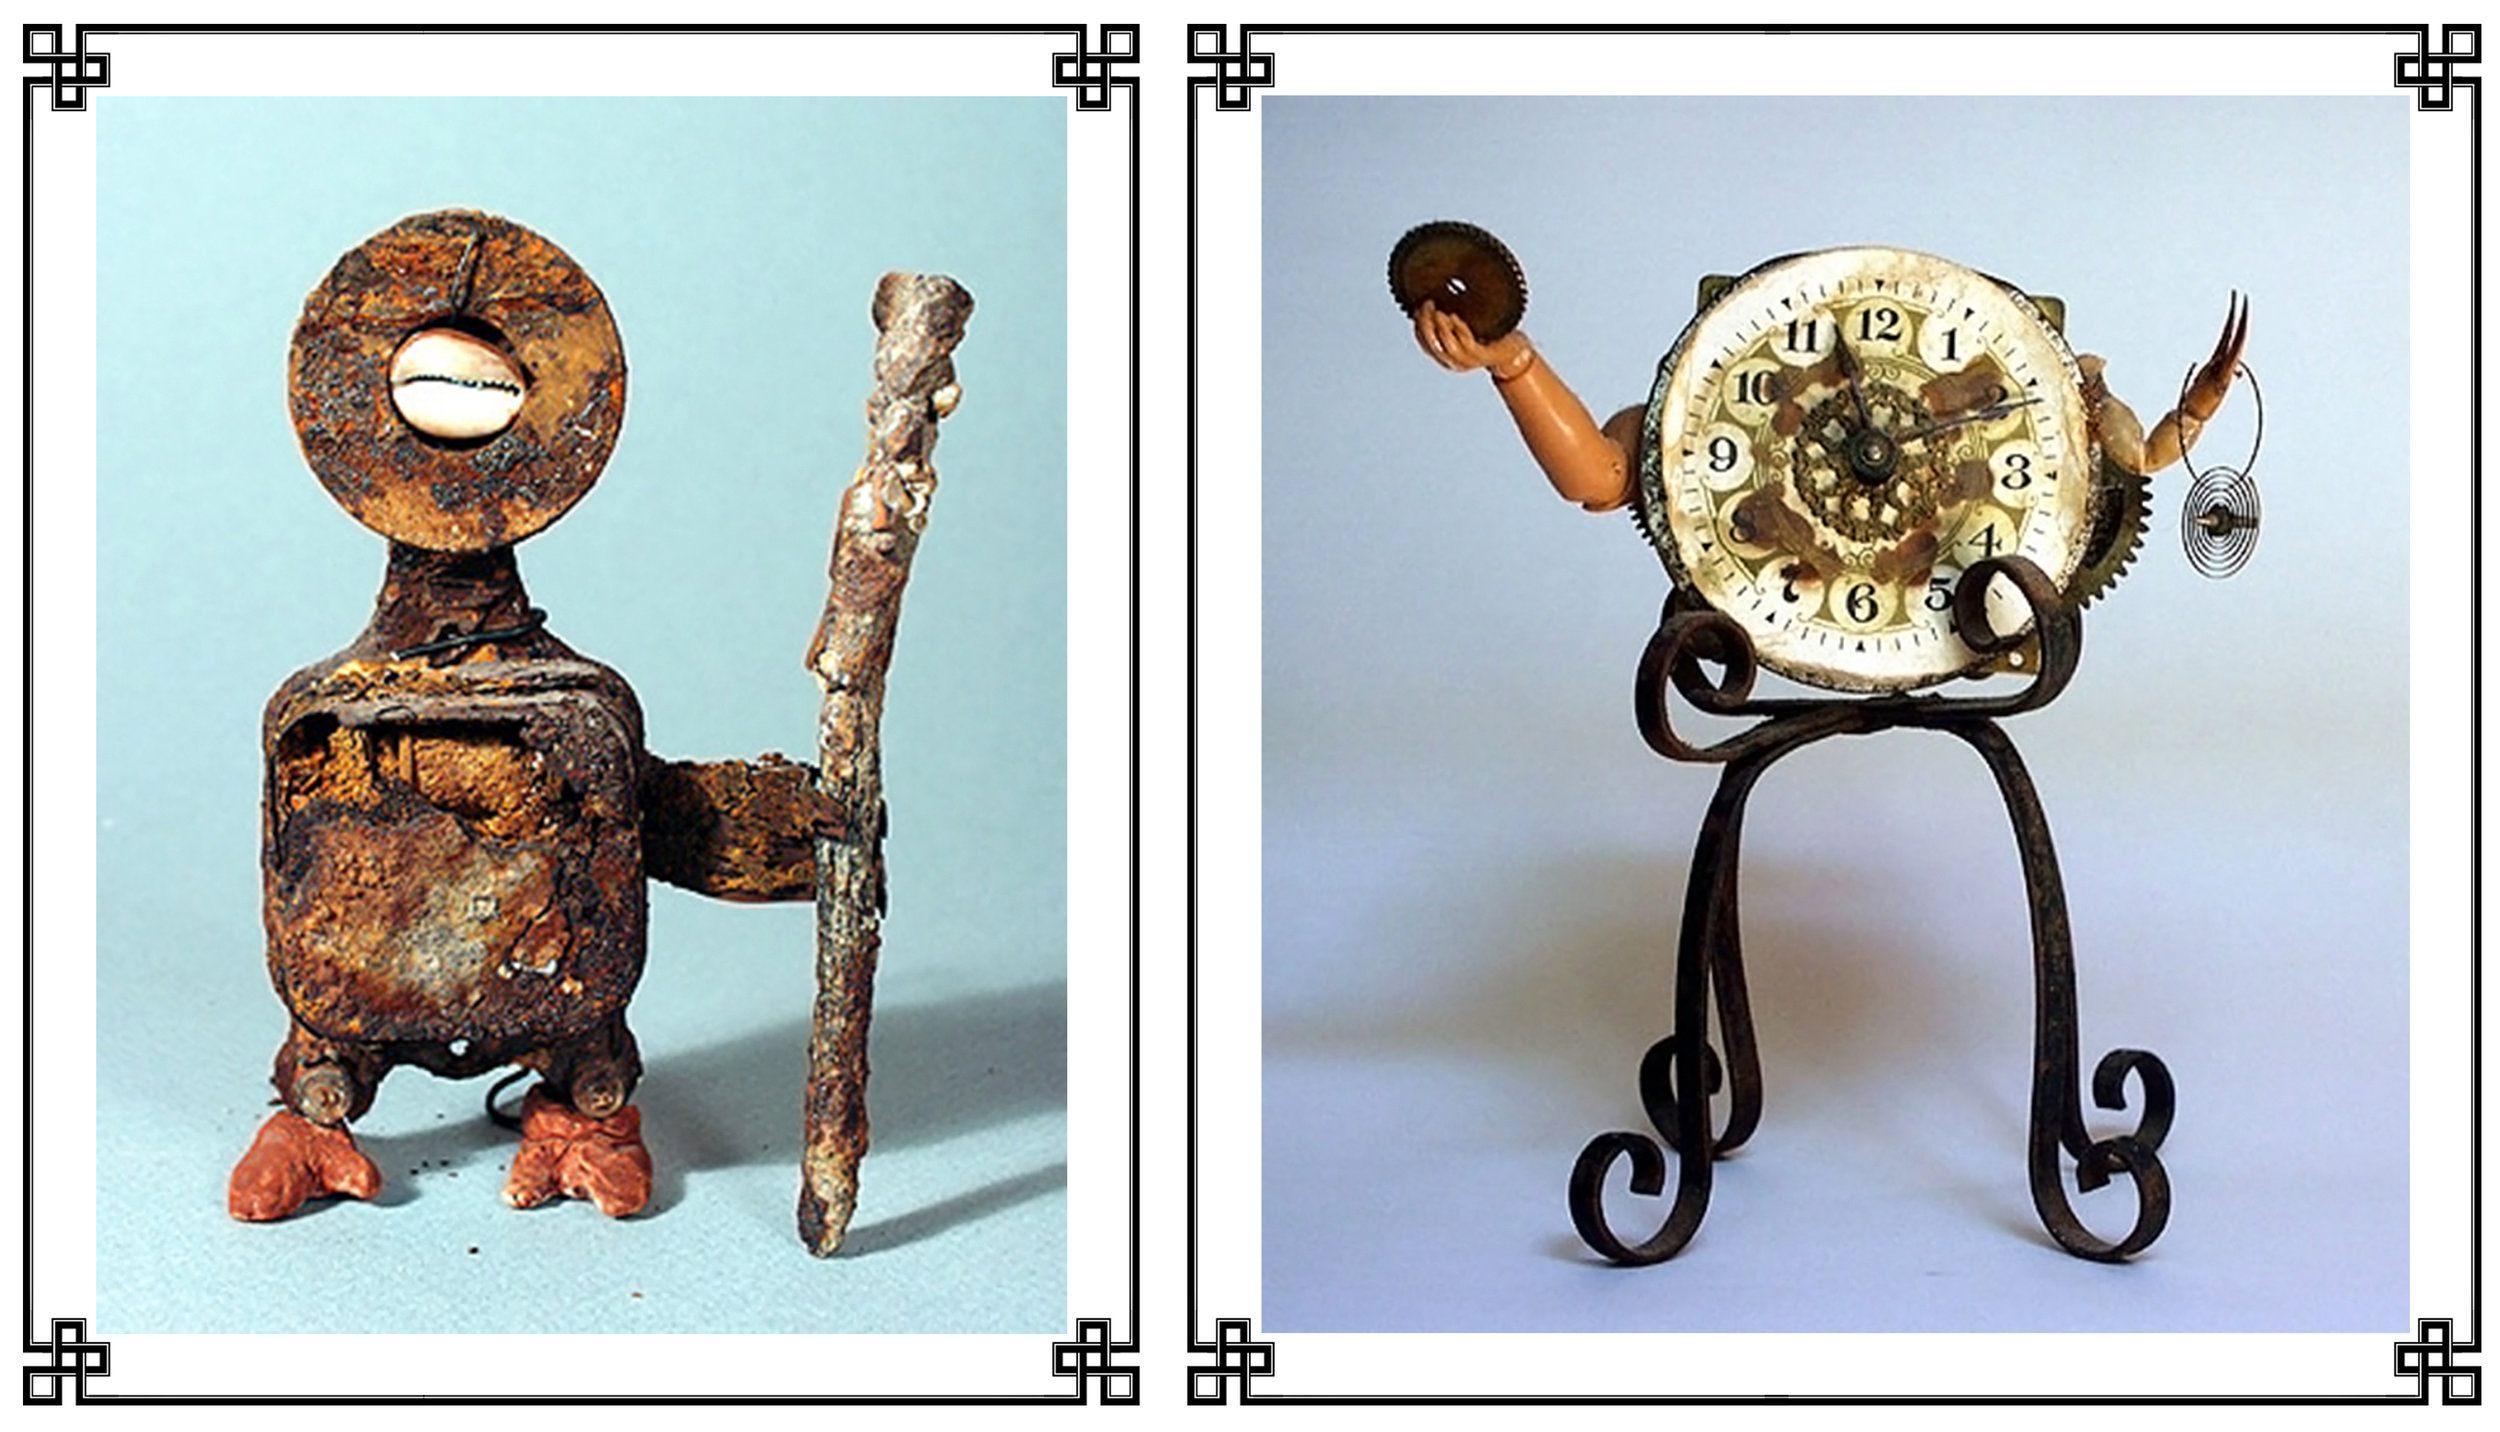 These fetishes, on gracious loan from the   Zymoglyphic Museum  , encapsulate the acute imbrication of animism and anthropomorphism long characteristic of the Zymoglyphic Region. At left, a Rust Age guardian figure in a defensive posture. As elucidated by curator Jim Q. Stewart, this figure, crumbling and exposing its mechanical innards, originally served as a protector against certain demons, but its fragility and constant state of decay have transformed it into a symbol of the futility of relying on such talismans. At right, an automaton from the subsequent Age of Wonders. Automata and other mechanical marvels were of particular interest in this time because they occupied a mysterious gray area between life and death. Although clearly made of inanimate parts, they had some semblance of life, and offered the disturbing possibility that living creatures were at heart themselves merely mechanical devices. This particular mechanical wonder was a clockwork automaton that not only told time but continuously removed pieces of itself and offered them to passersby. How the internal parts were regenerated has yet to be determined despite intensive investigation by museum staff.